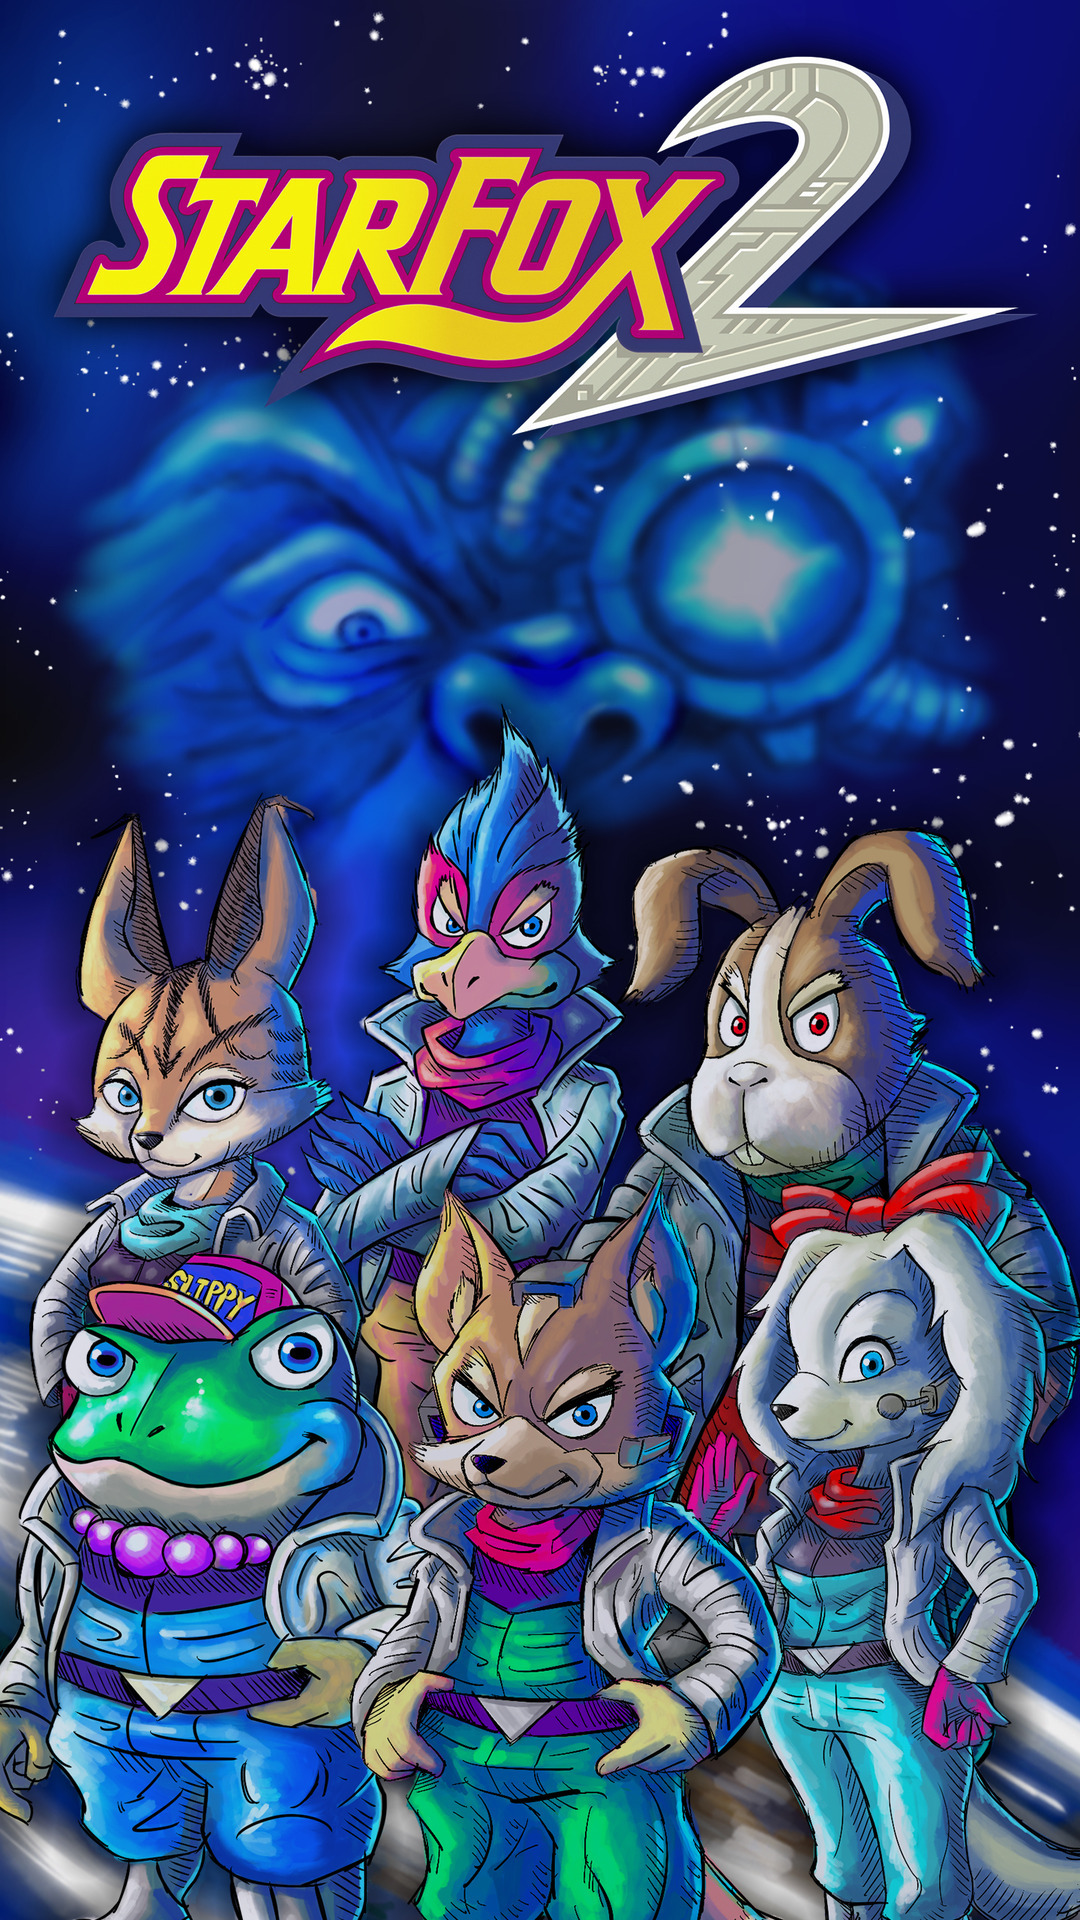 Star Fox Wallpaper Posted By Ryan Johnson